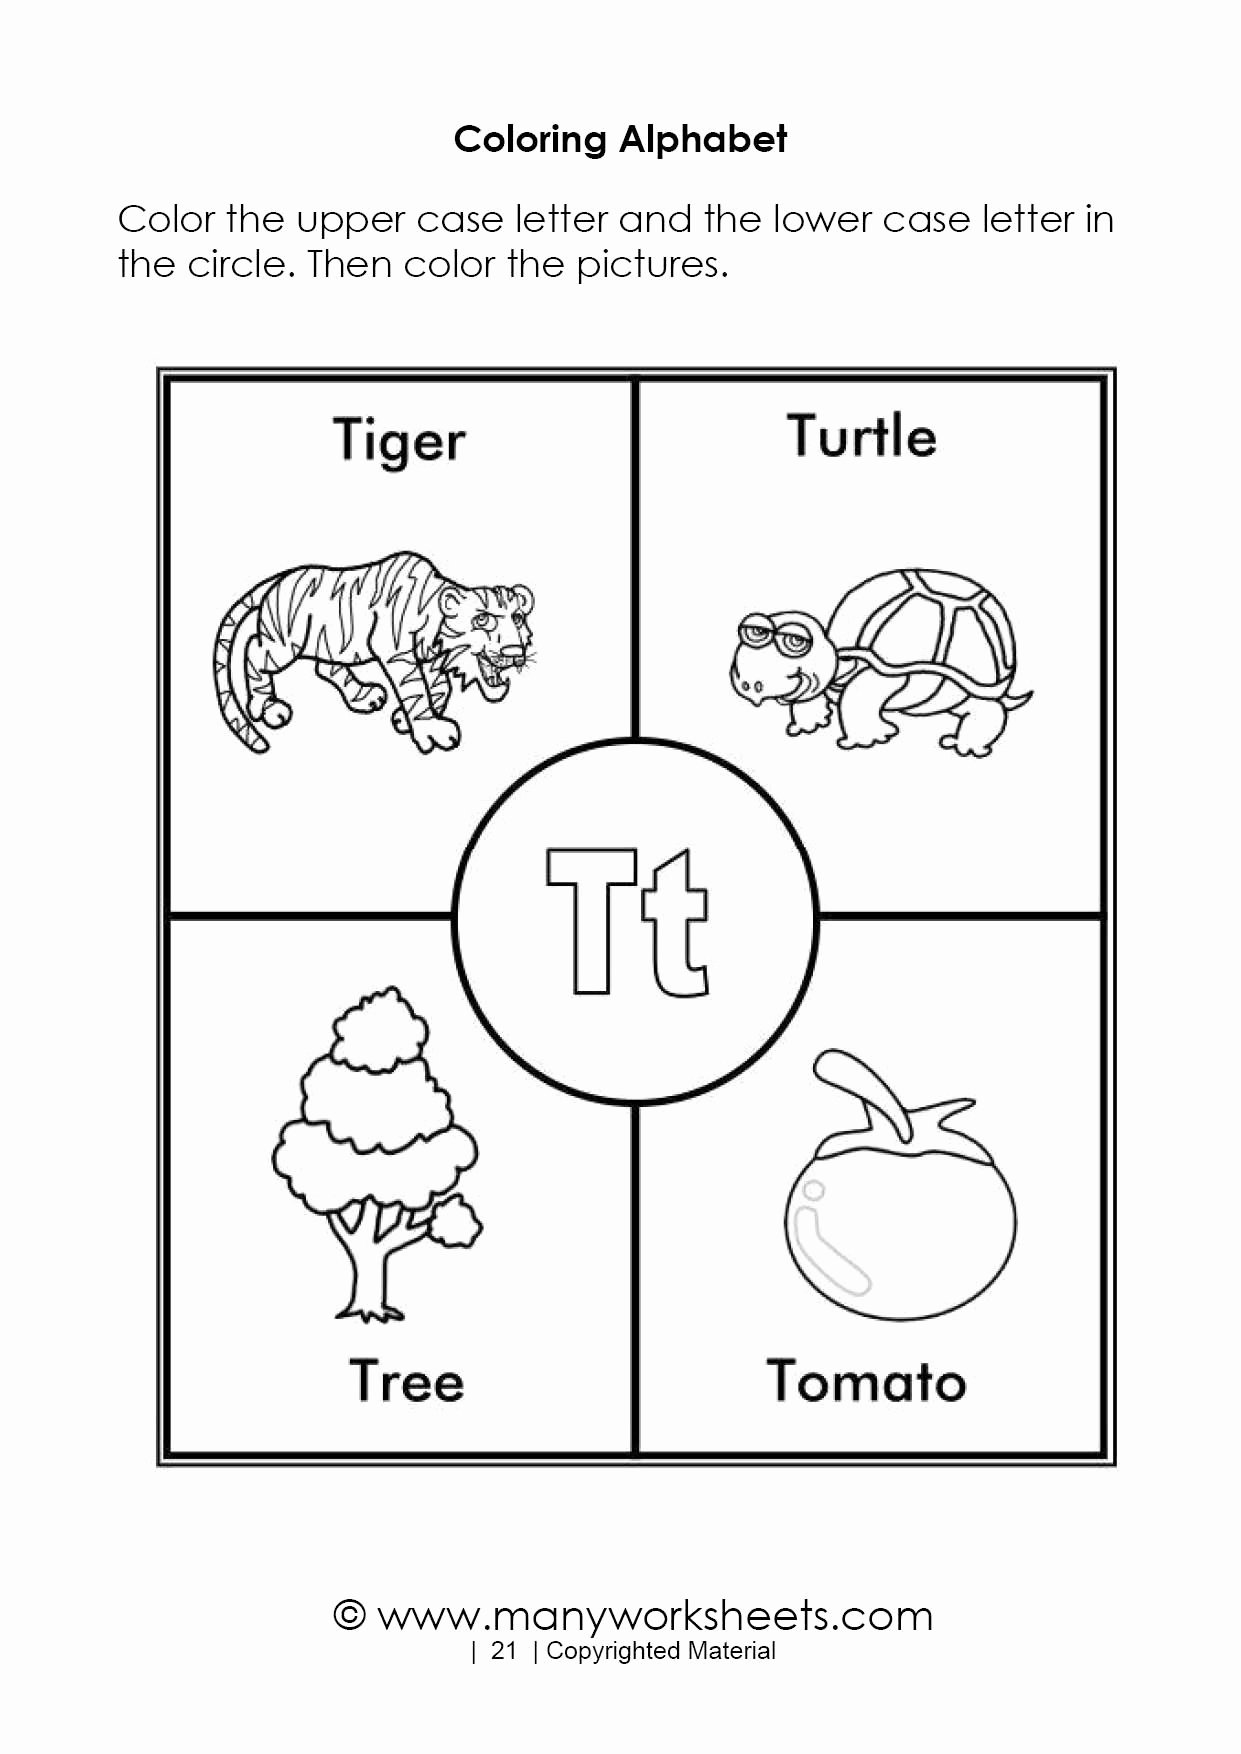 Letter T Worksheets for Preschoolers Inspirational Alphabet Coloring Pages – Letter T